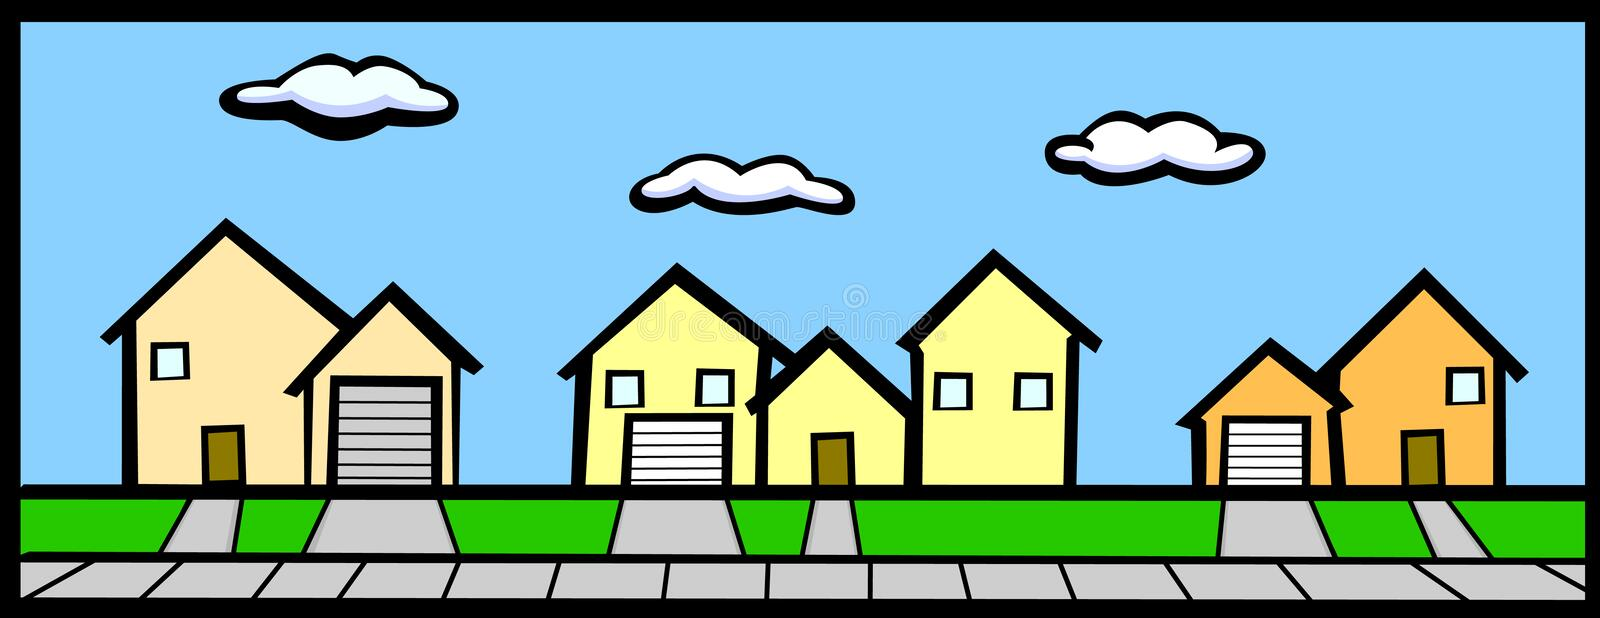 Street with houses royalty free illustration